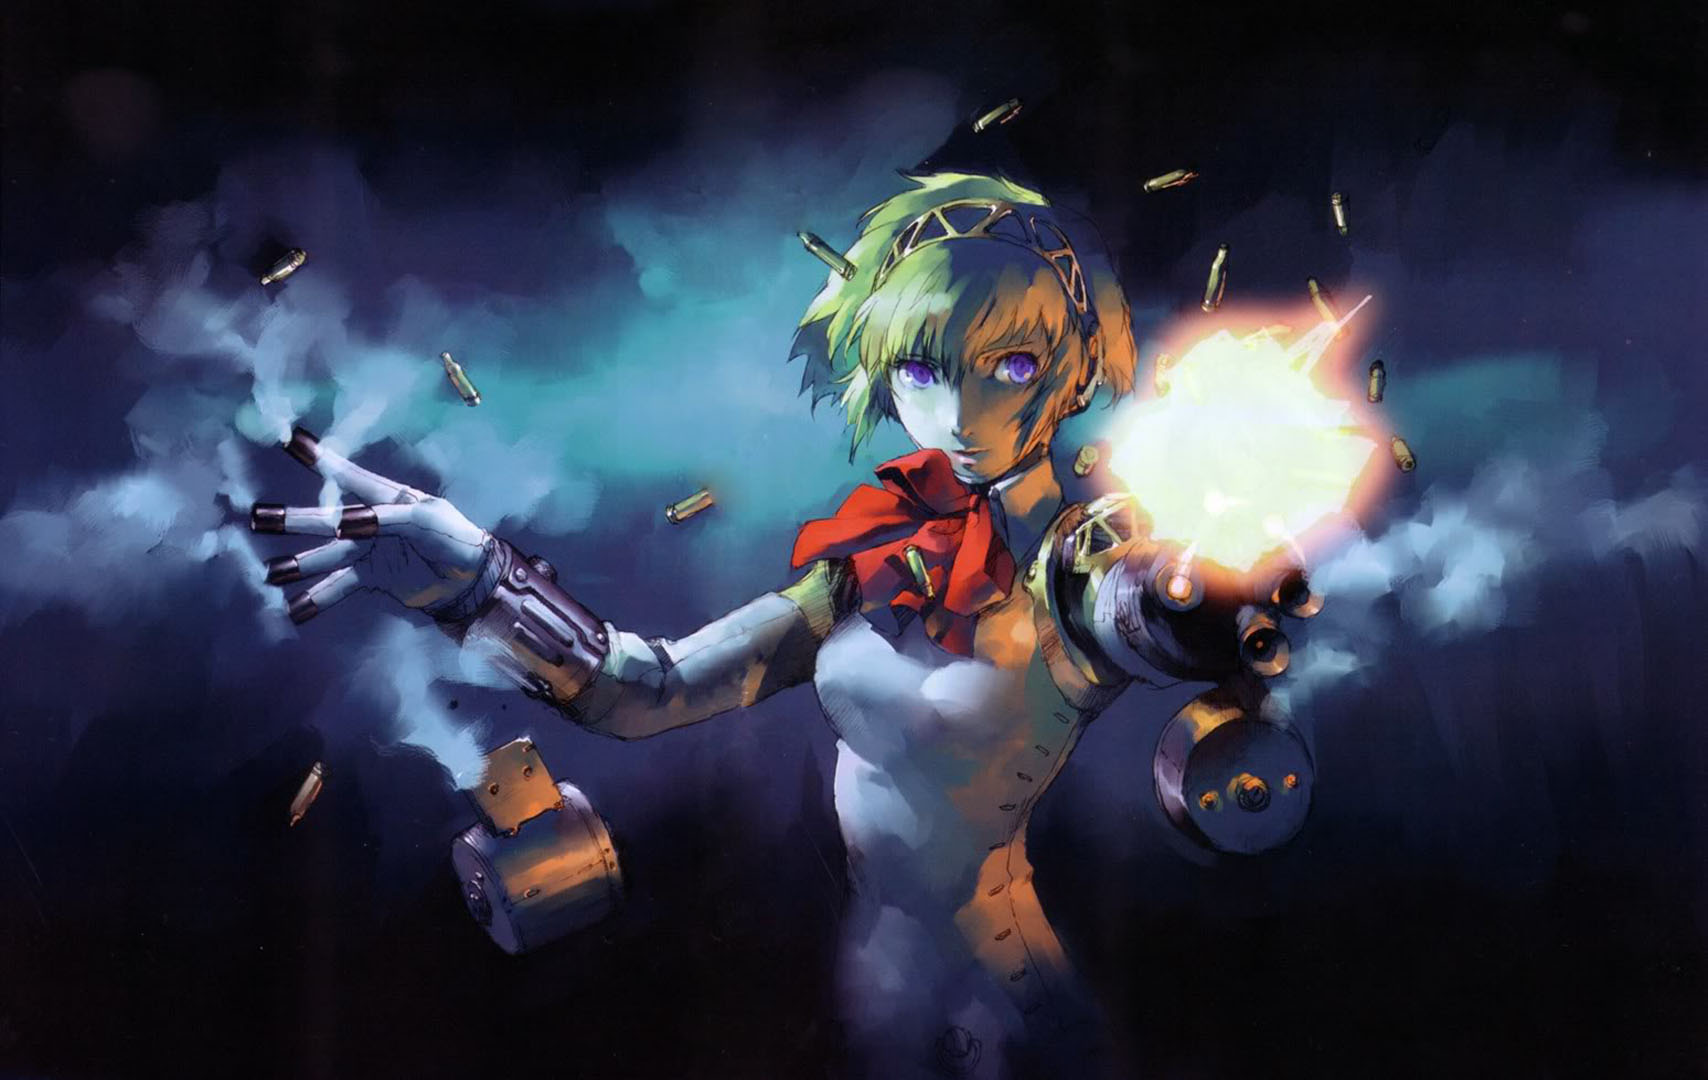 Aigis Shooting From Her Fingers